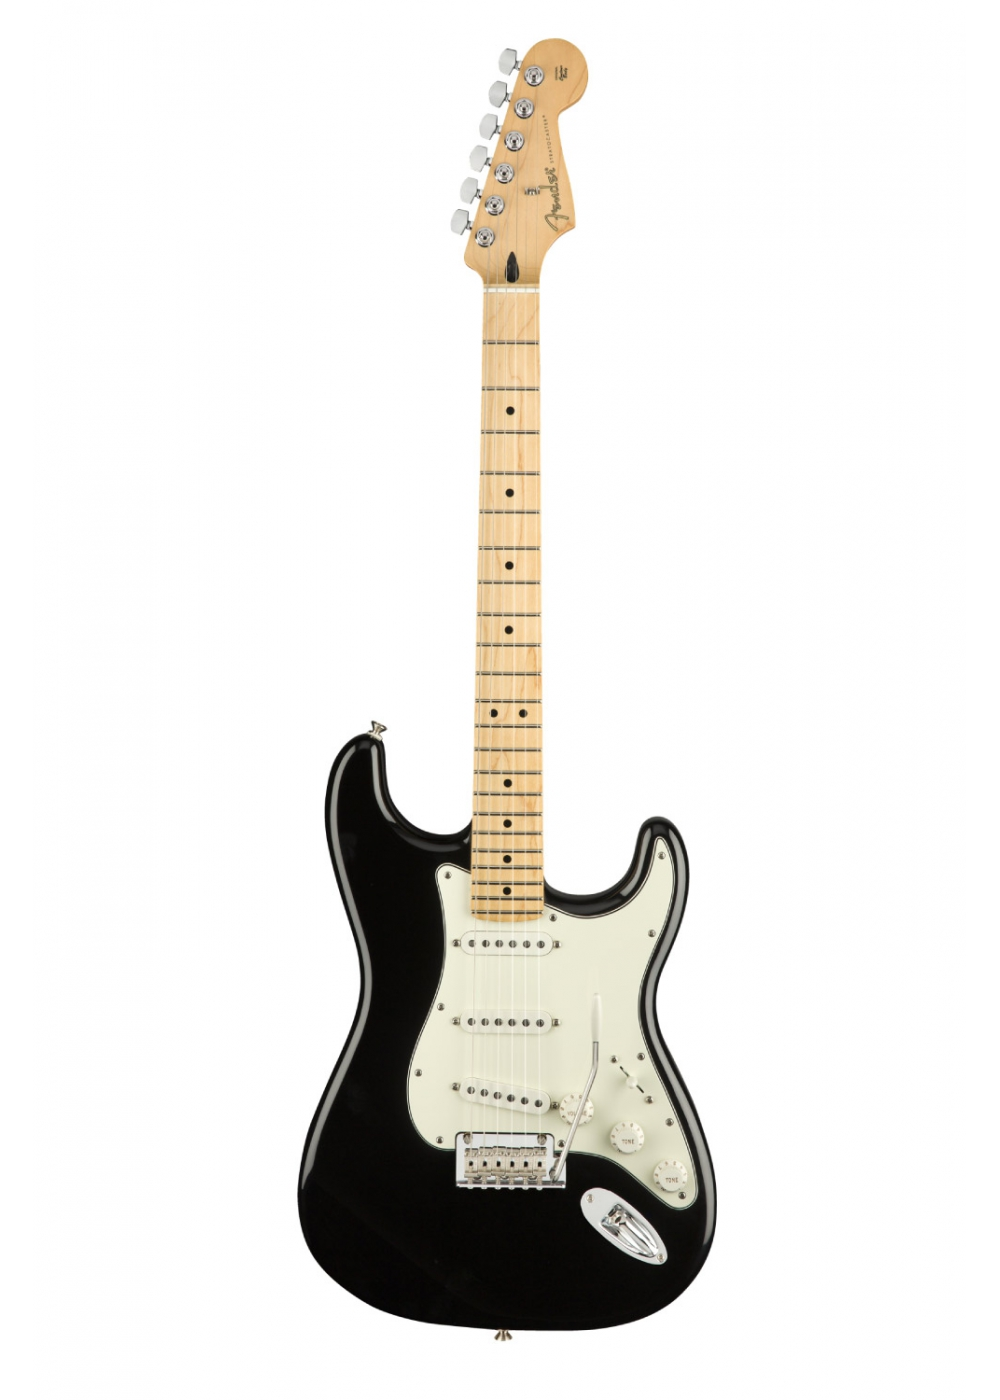 Fender Stratocaster player Bk